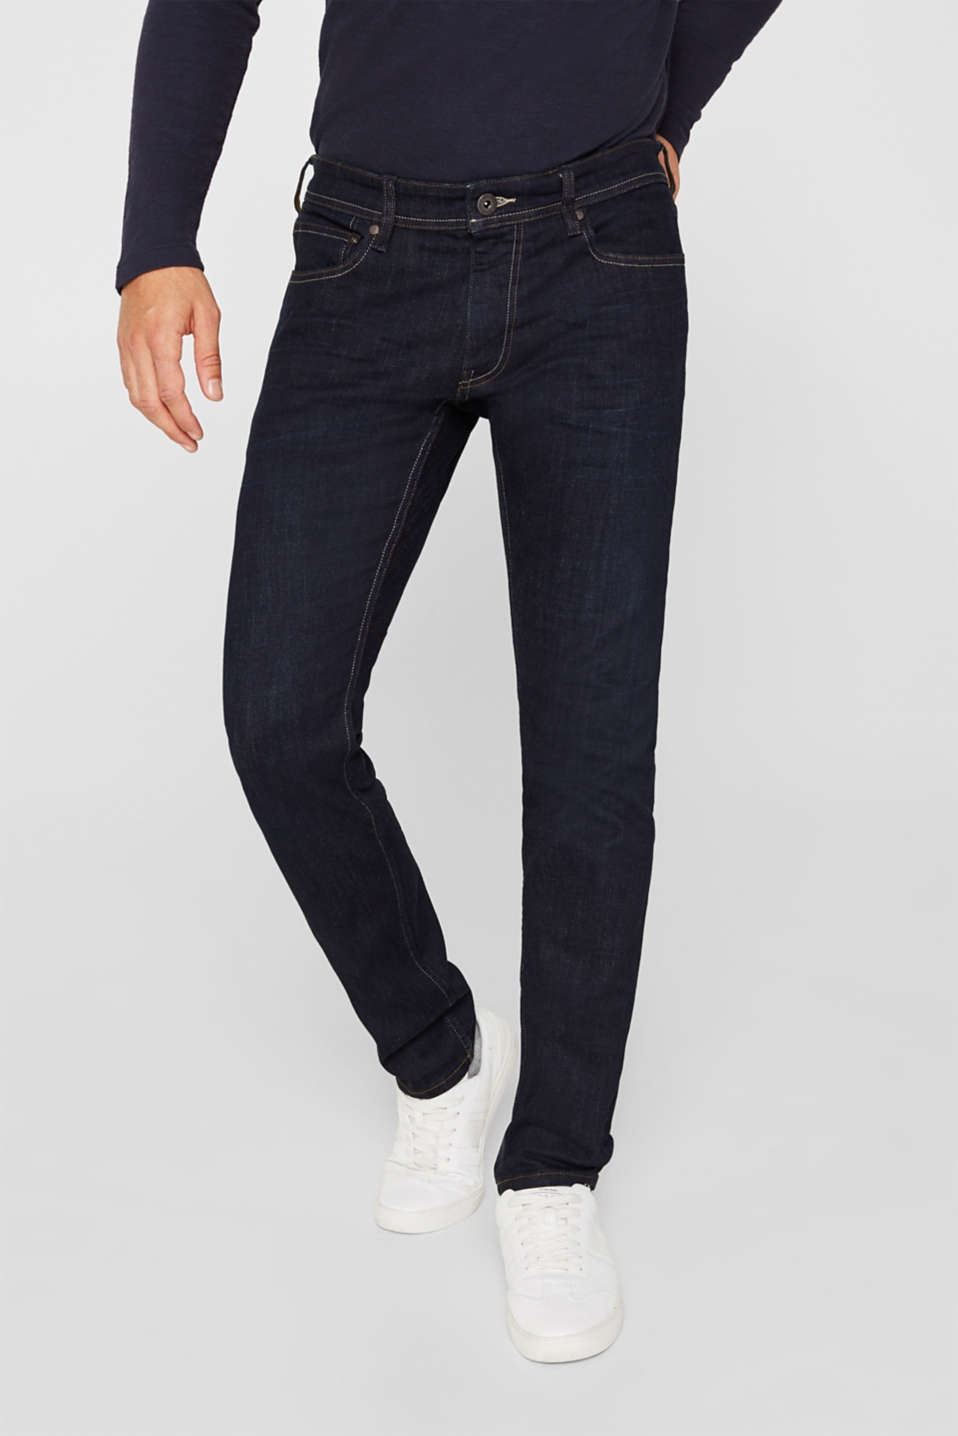 Pants denim Slim fit, BLUE RINSE, detail image number 0